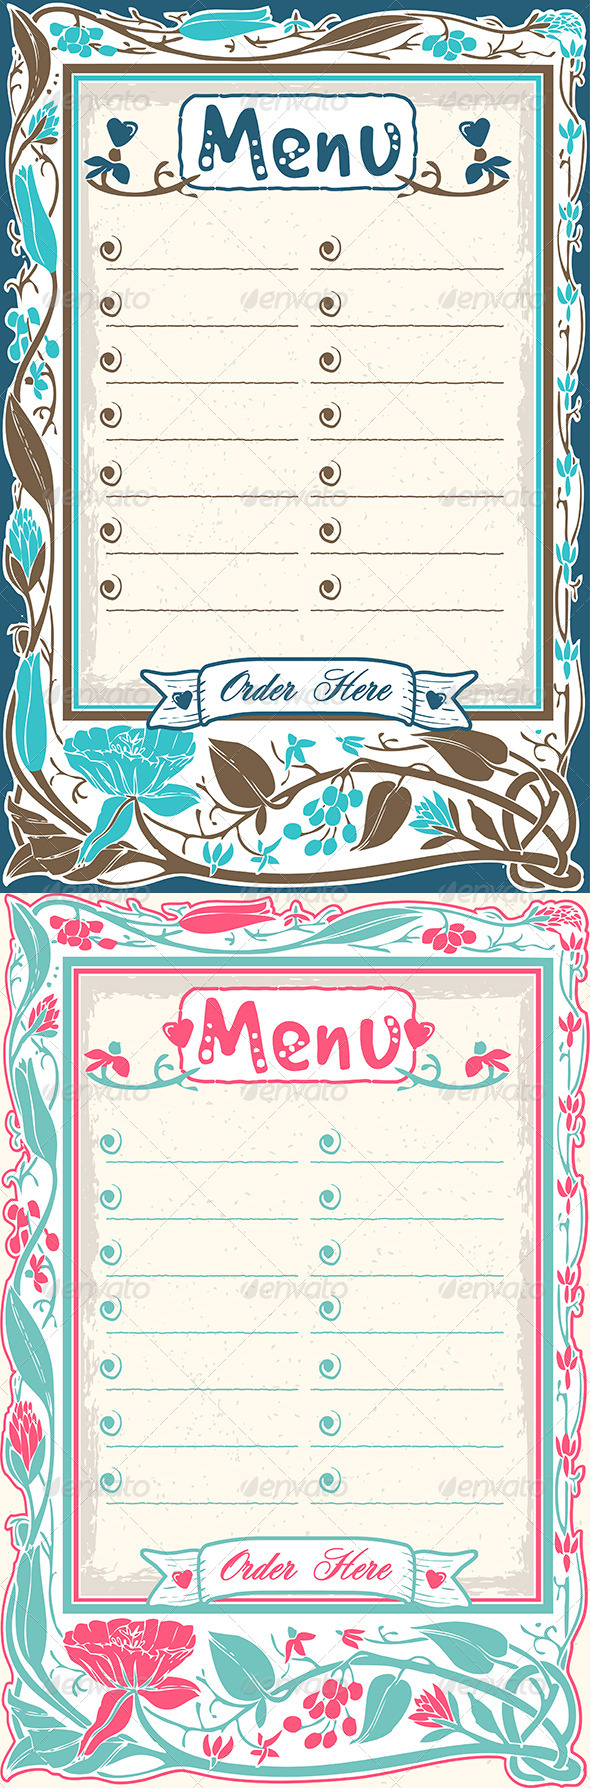 GraphicRiver Vintage Candid Menu 6925537